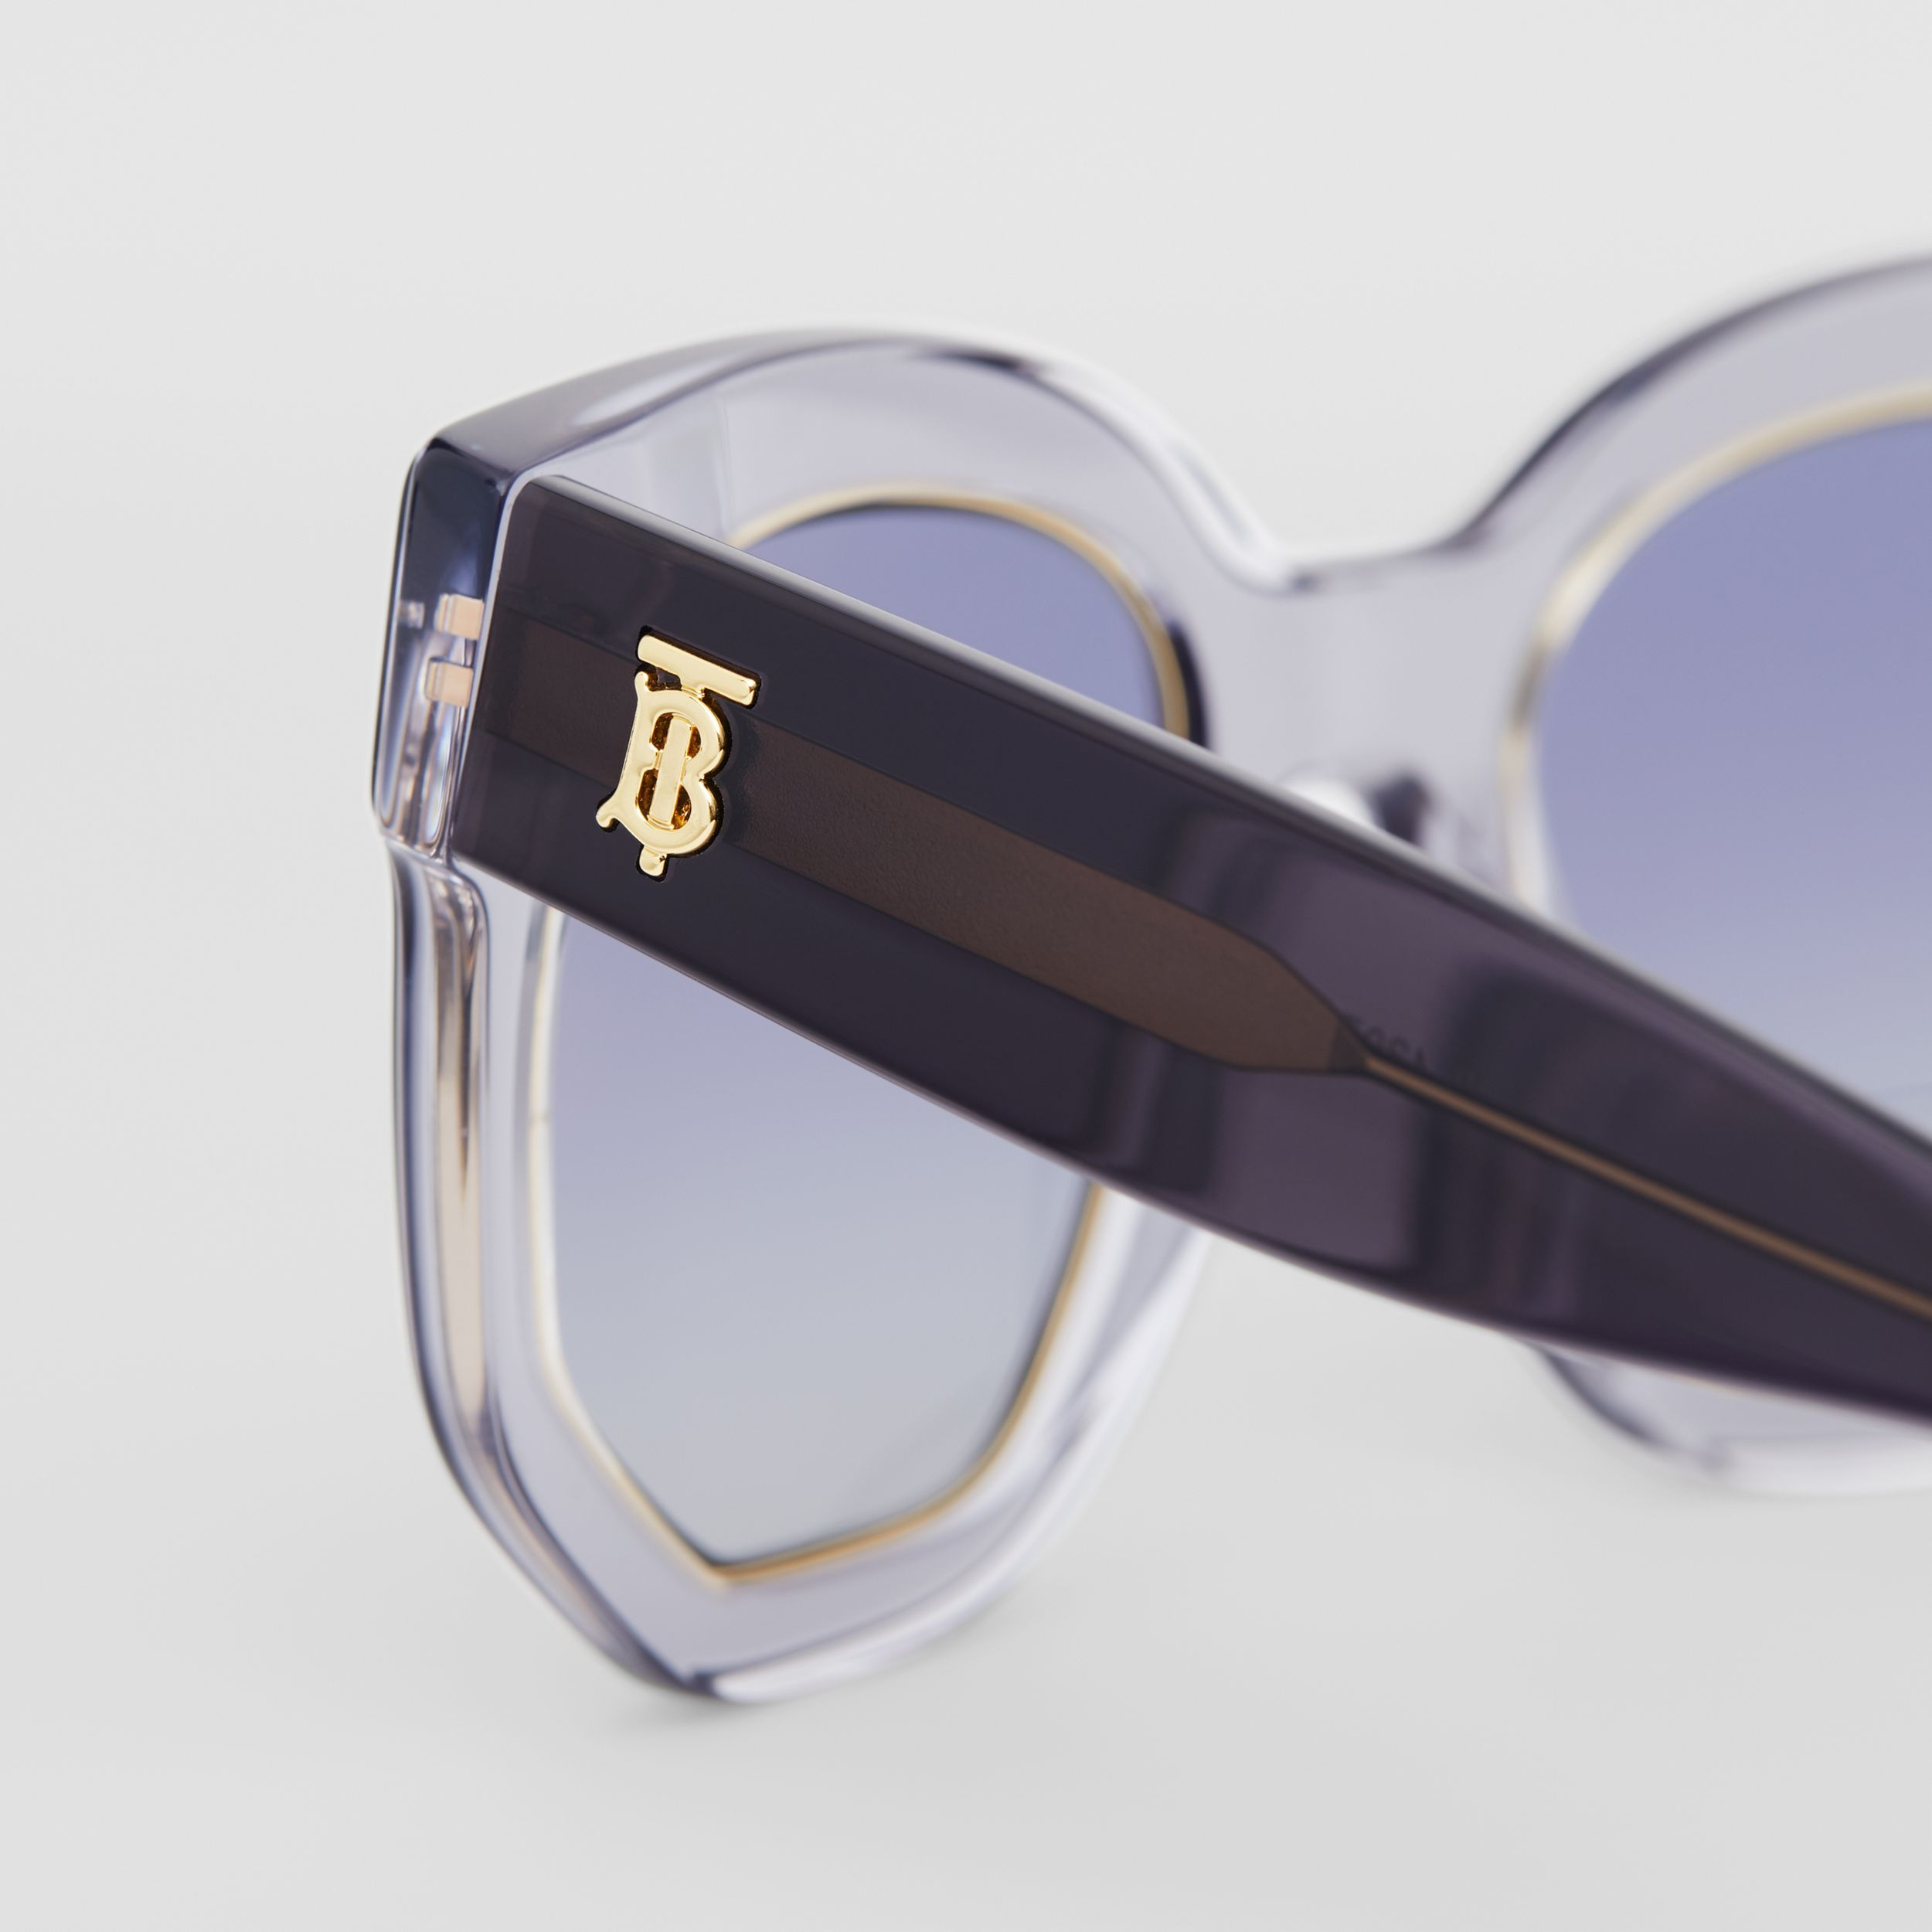 Geometric Frame Sunglasses in Grey - Women | Burberry - 2